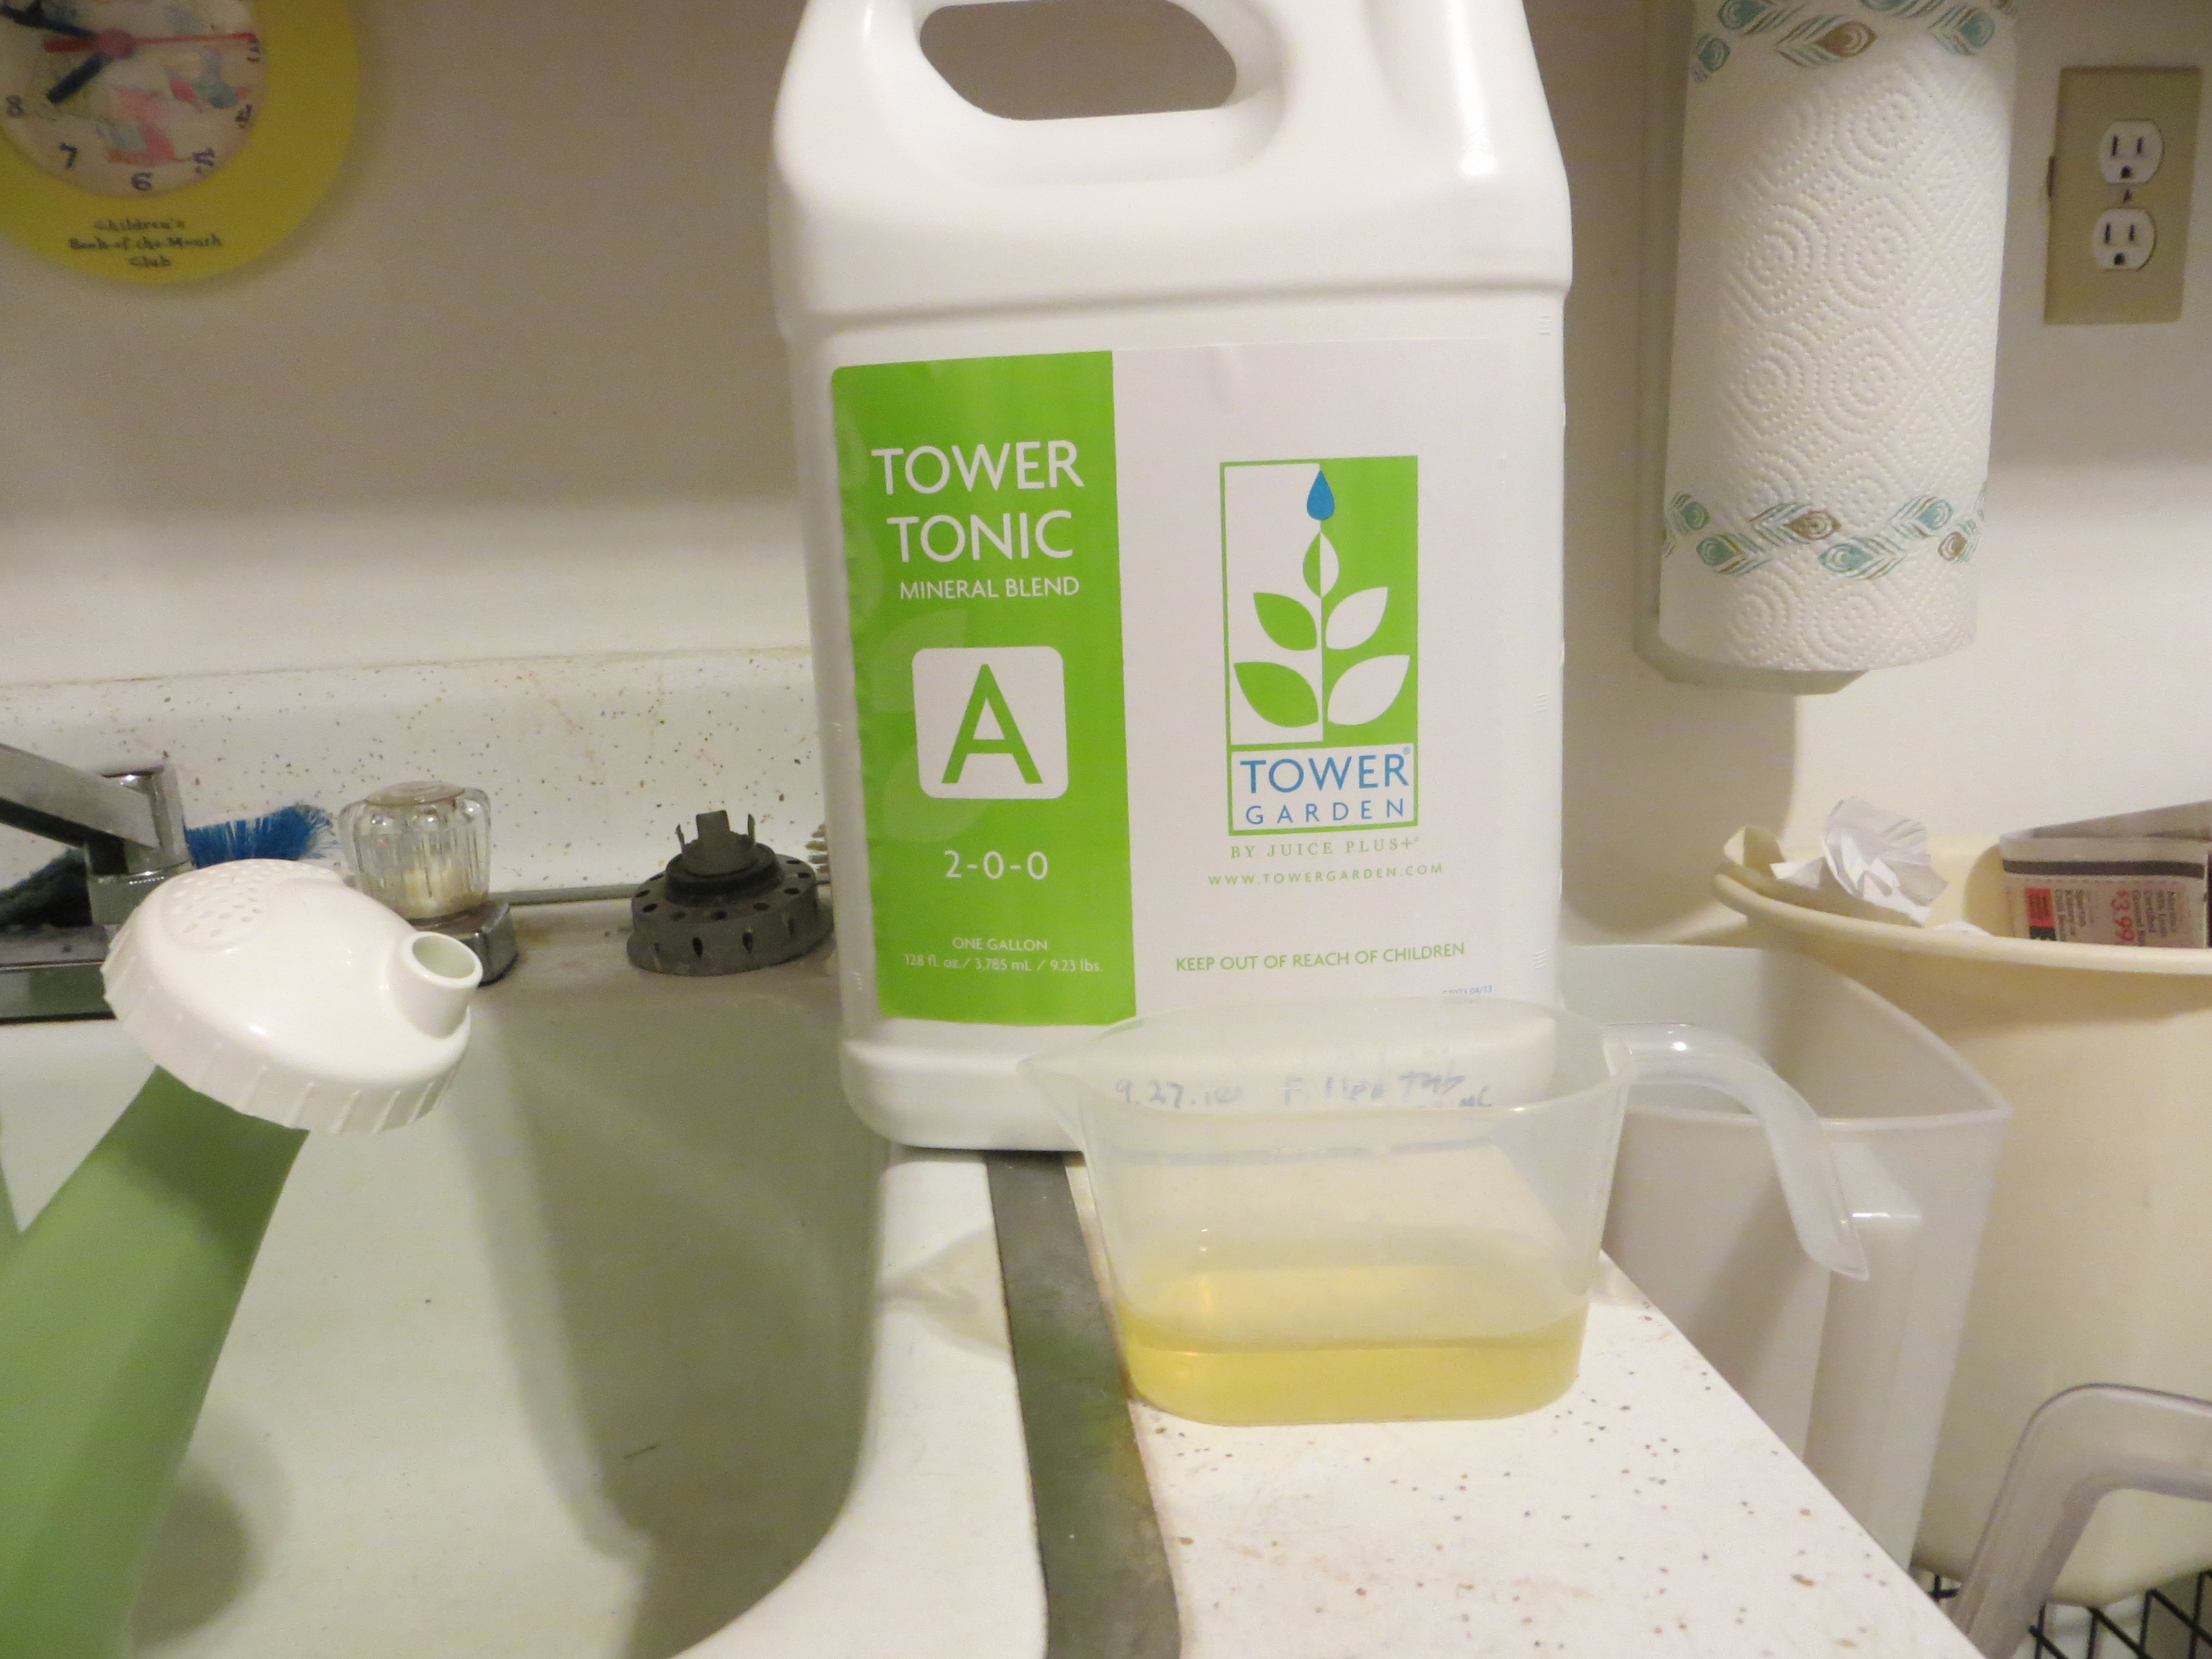 Use The Ph Test Kit To Of Water In Green Tub Put 5 Ml From Tower Garden Into Vile